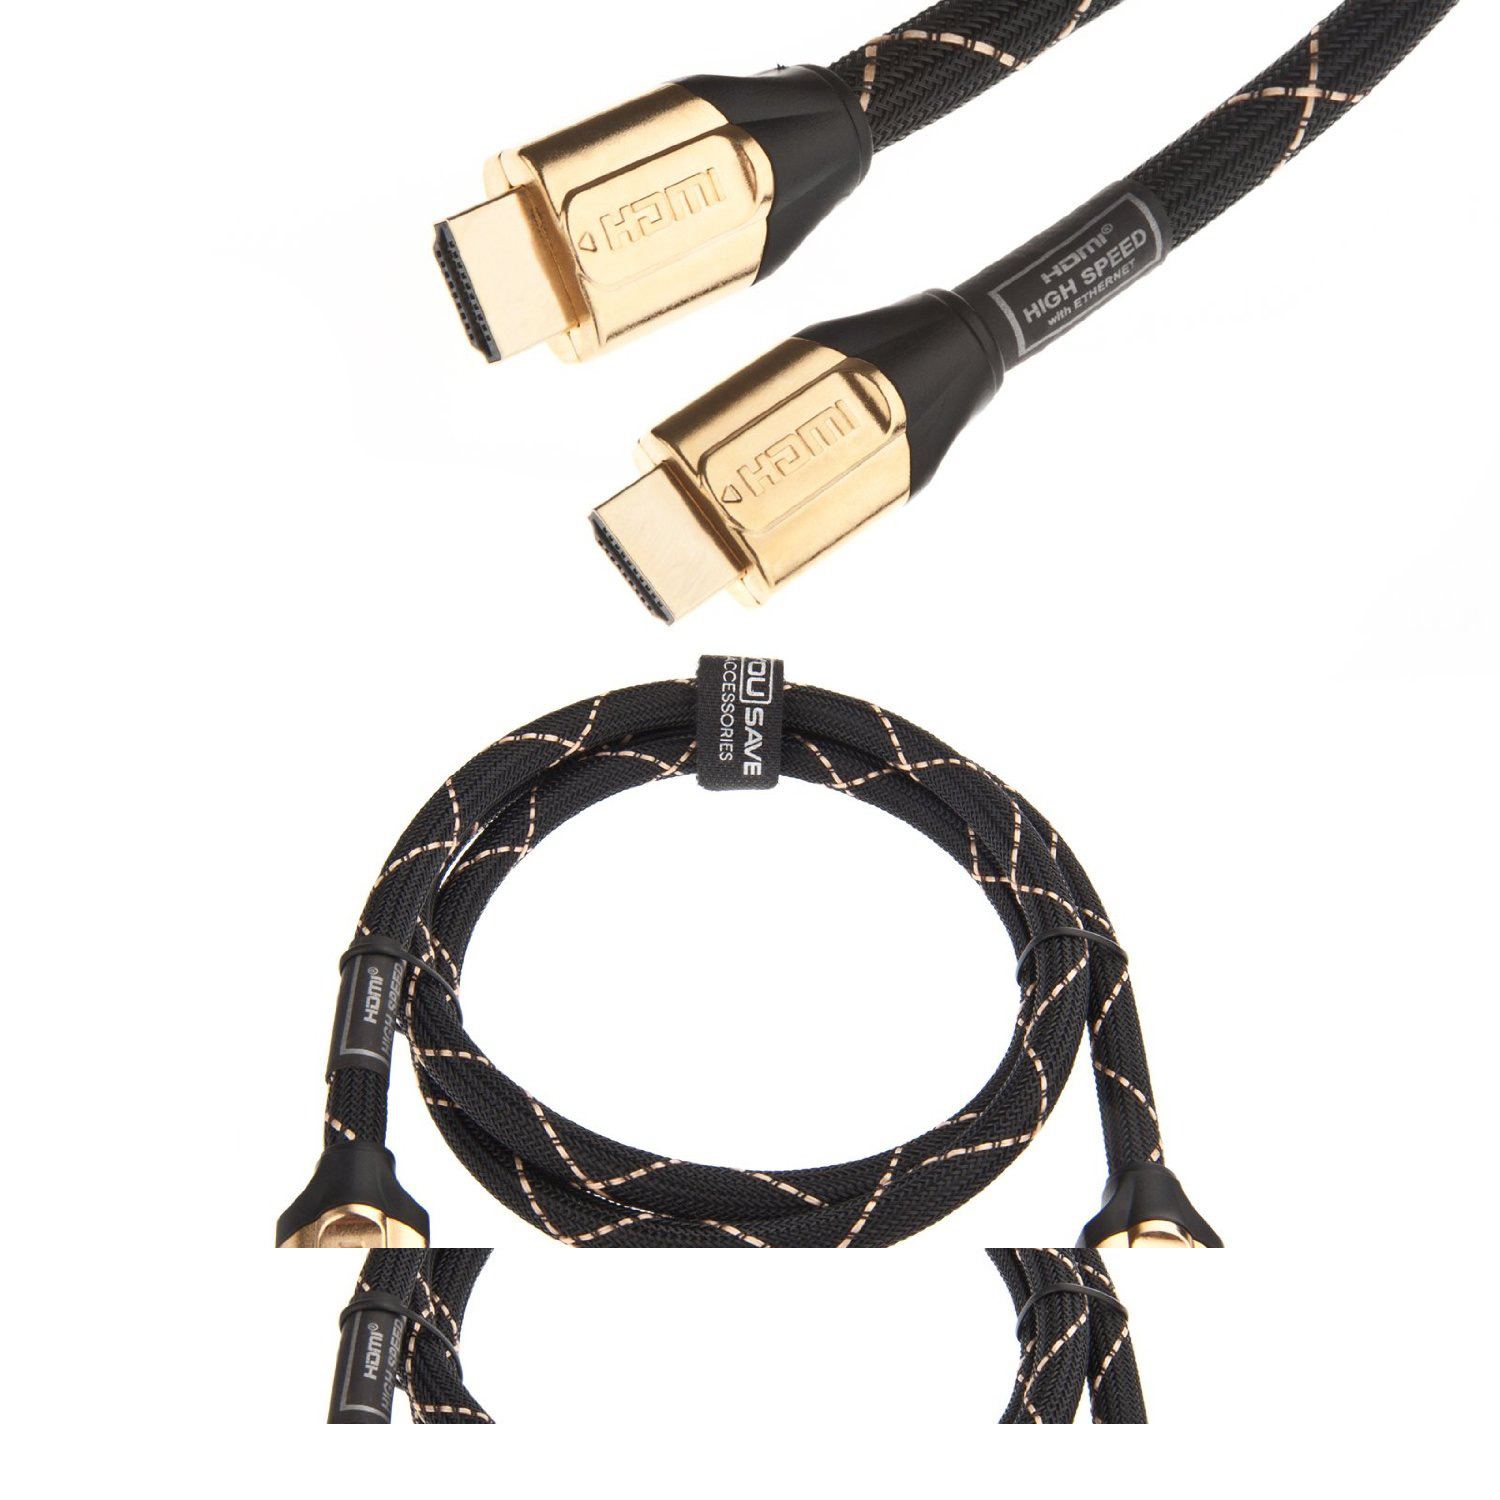 YouSave Accessories Accessories High Speed HDMI Cable Edition 1m